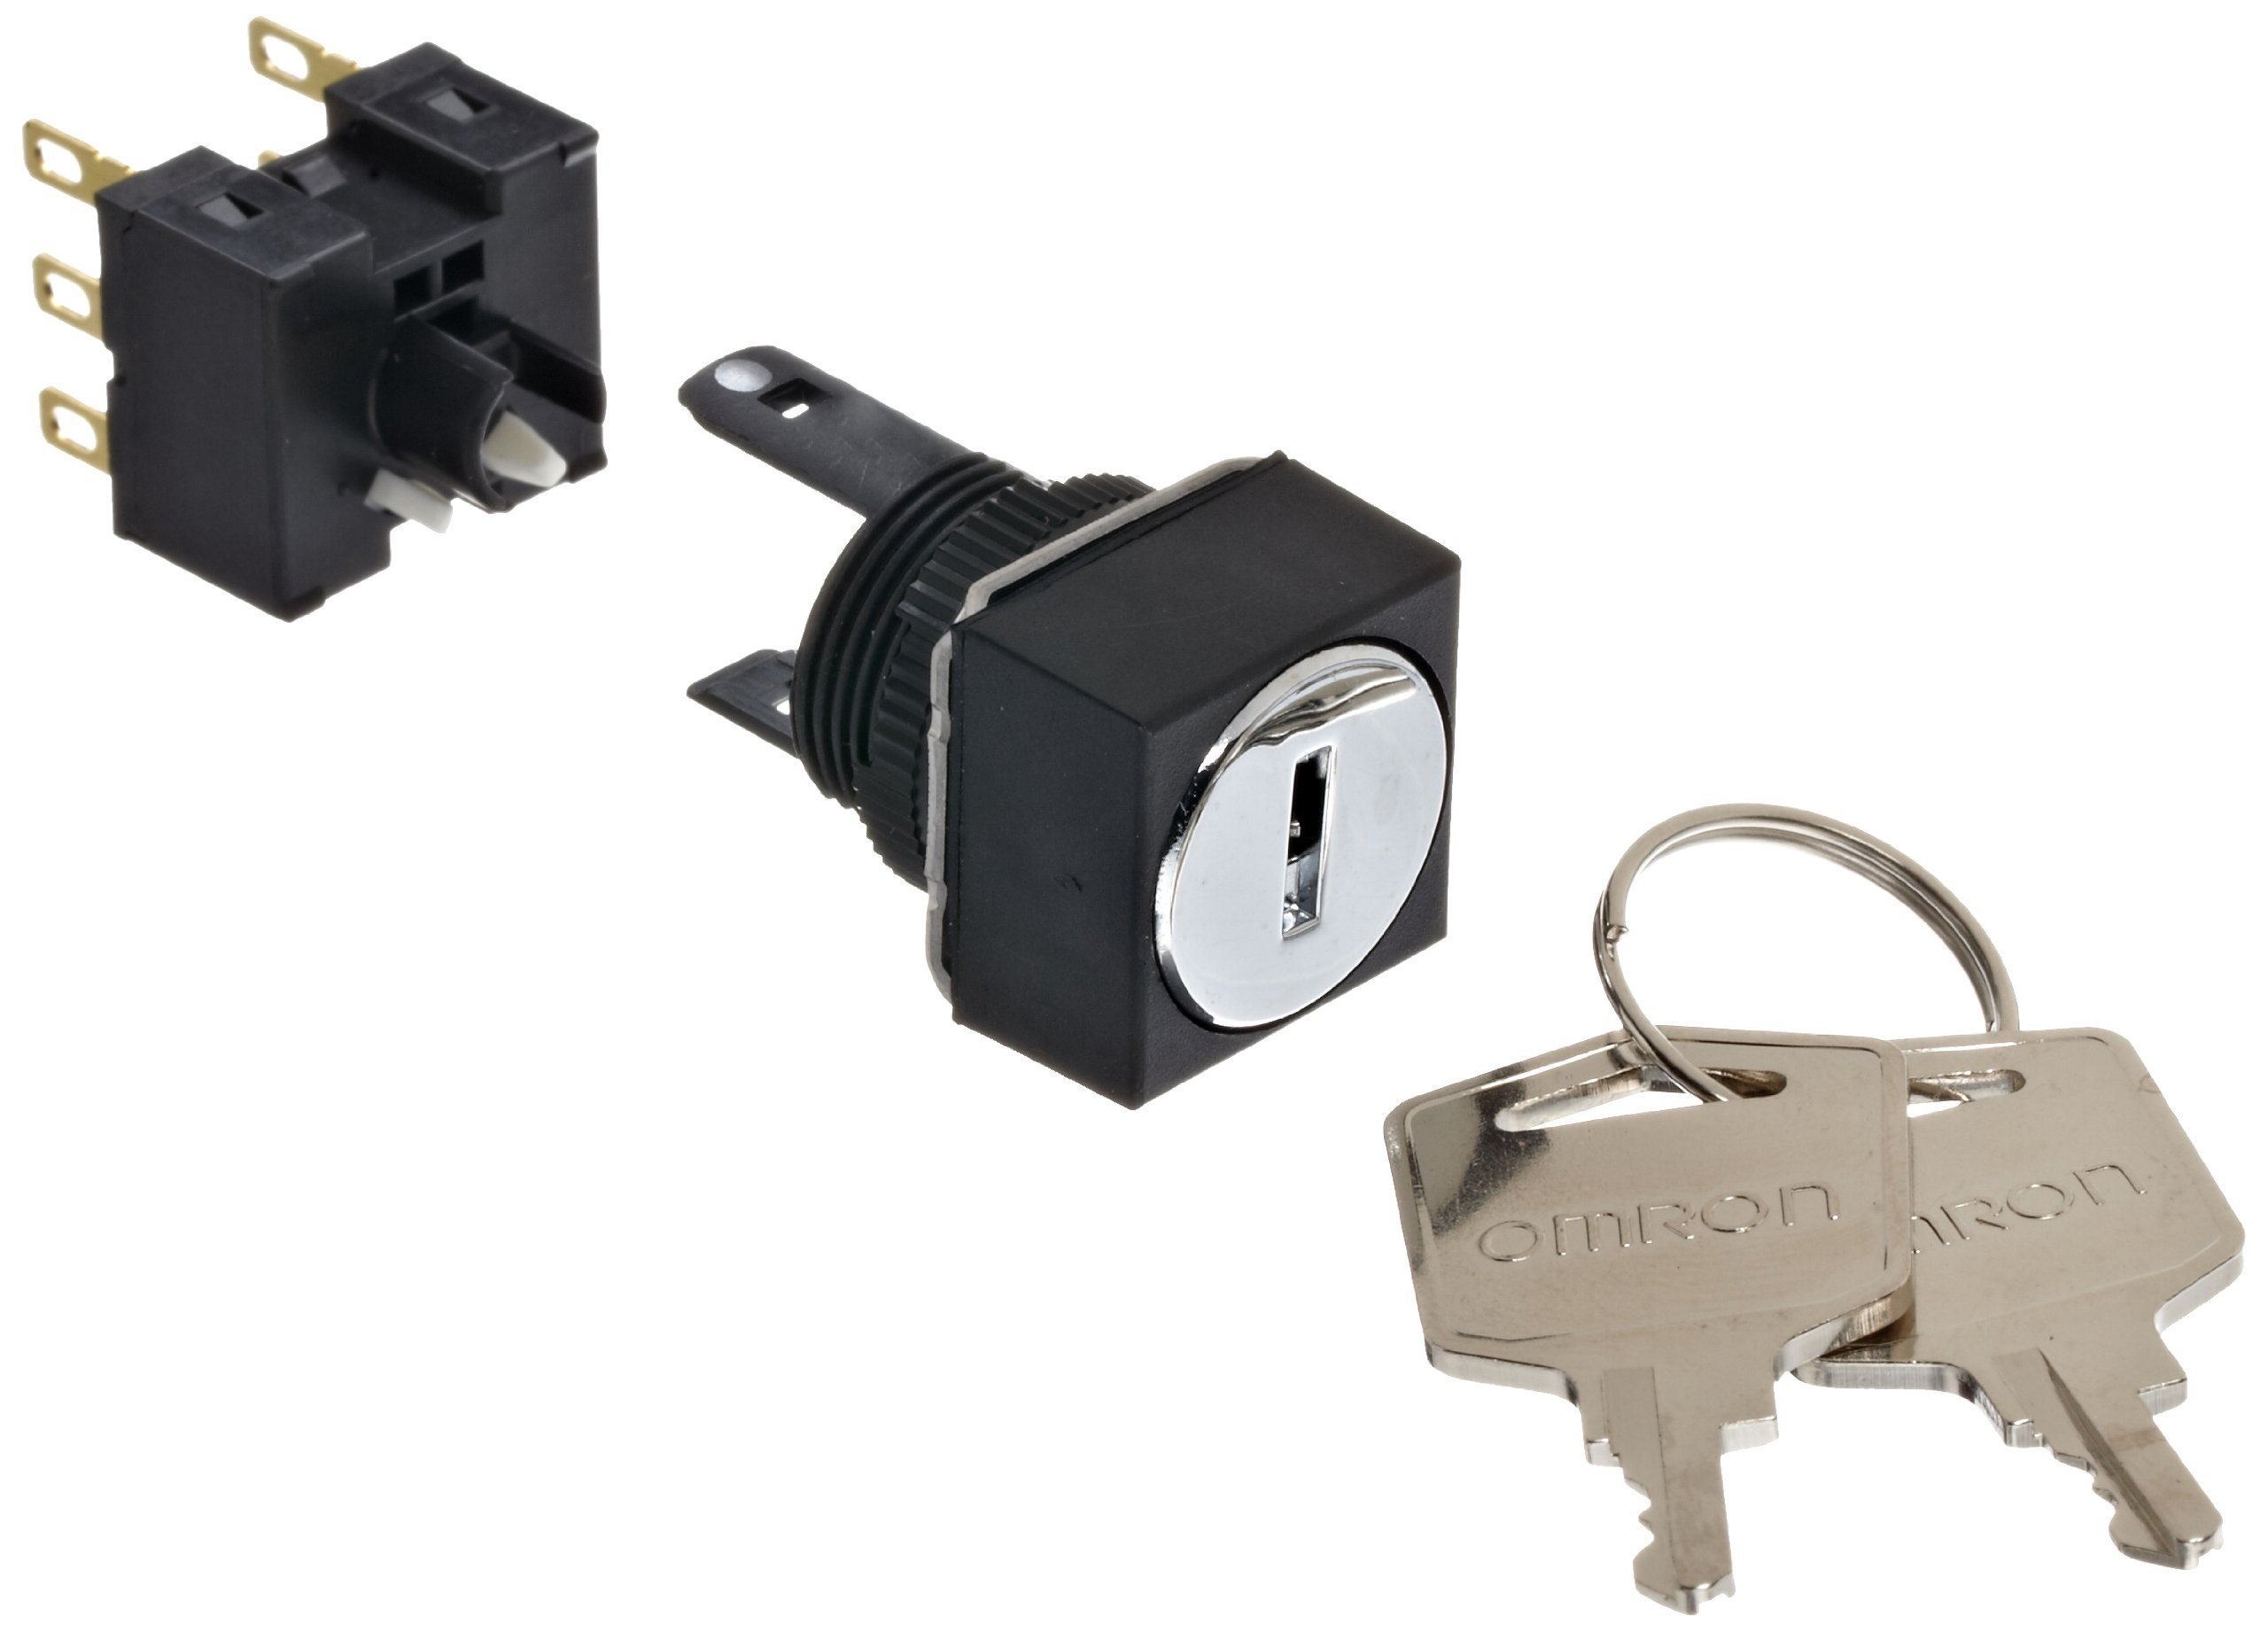 Omron A165K-A3MC-2 Key Type Selector and Switch, Solder Terminal, IP65 Oil Resistant, 16mm Mounting Aperture, 3 Notches, Manual Reset Method, Center Key Release Postion, Square,Double Pole Double Throw Contacts